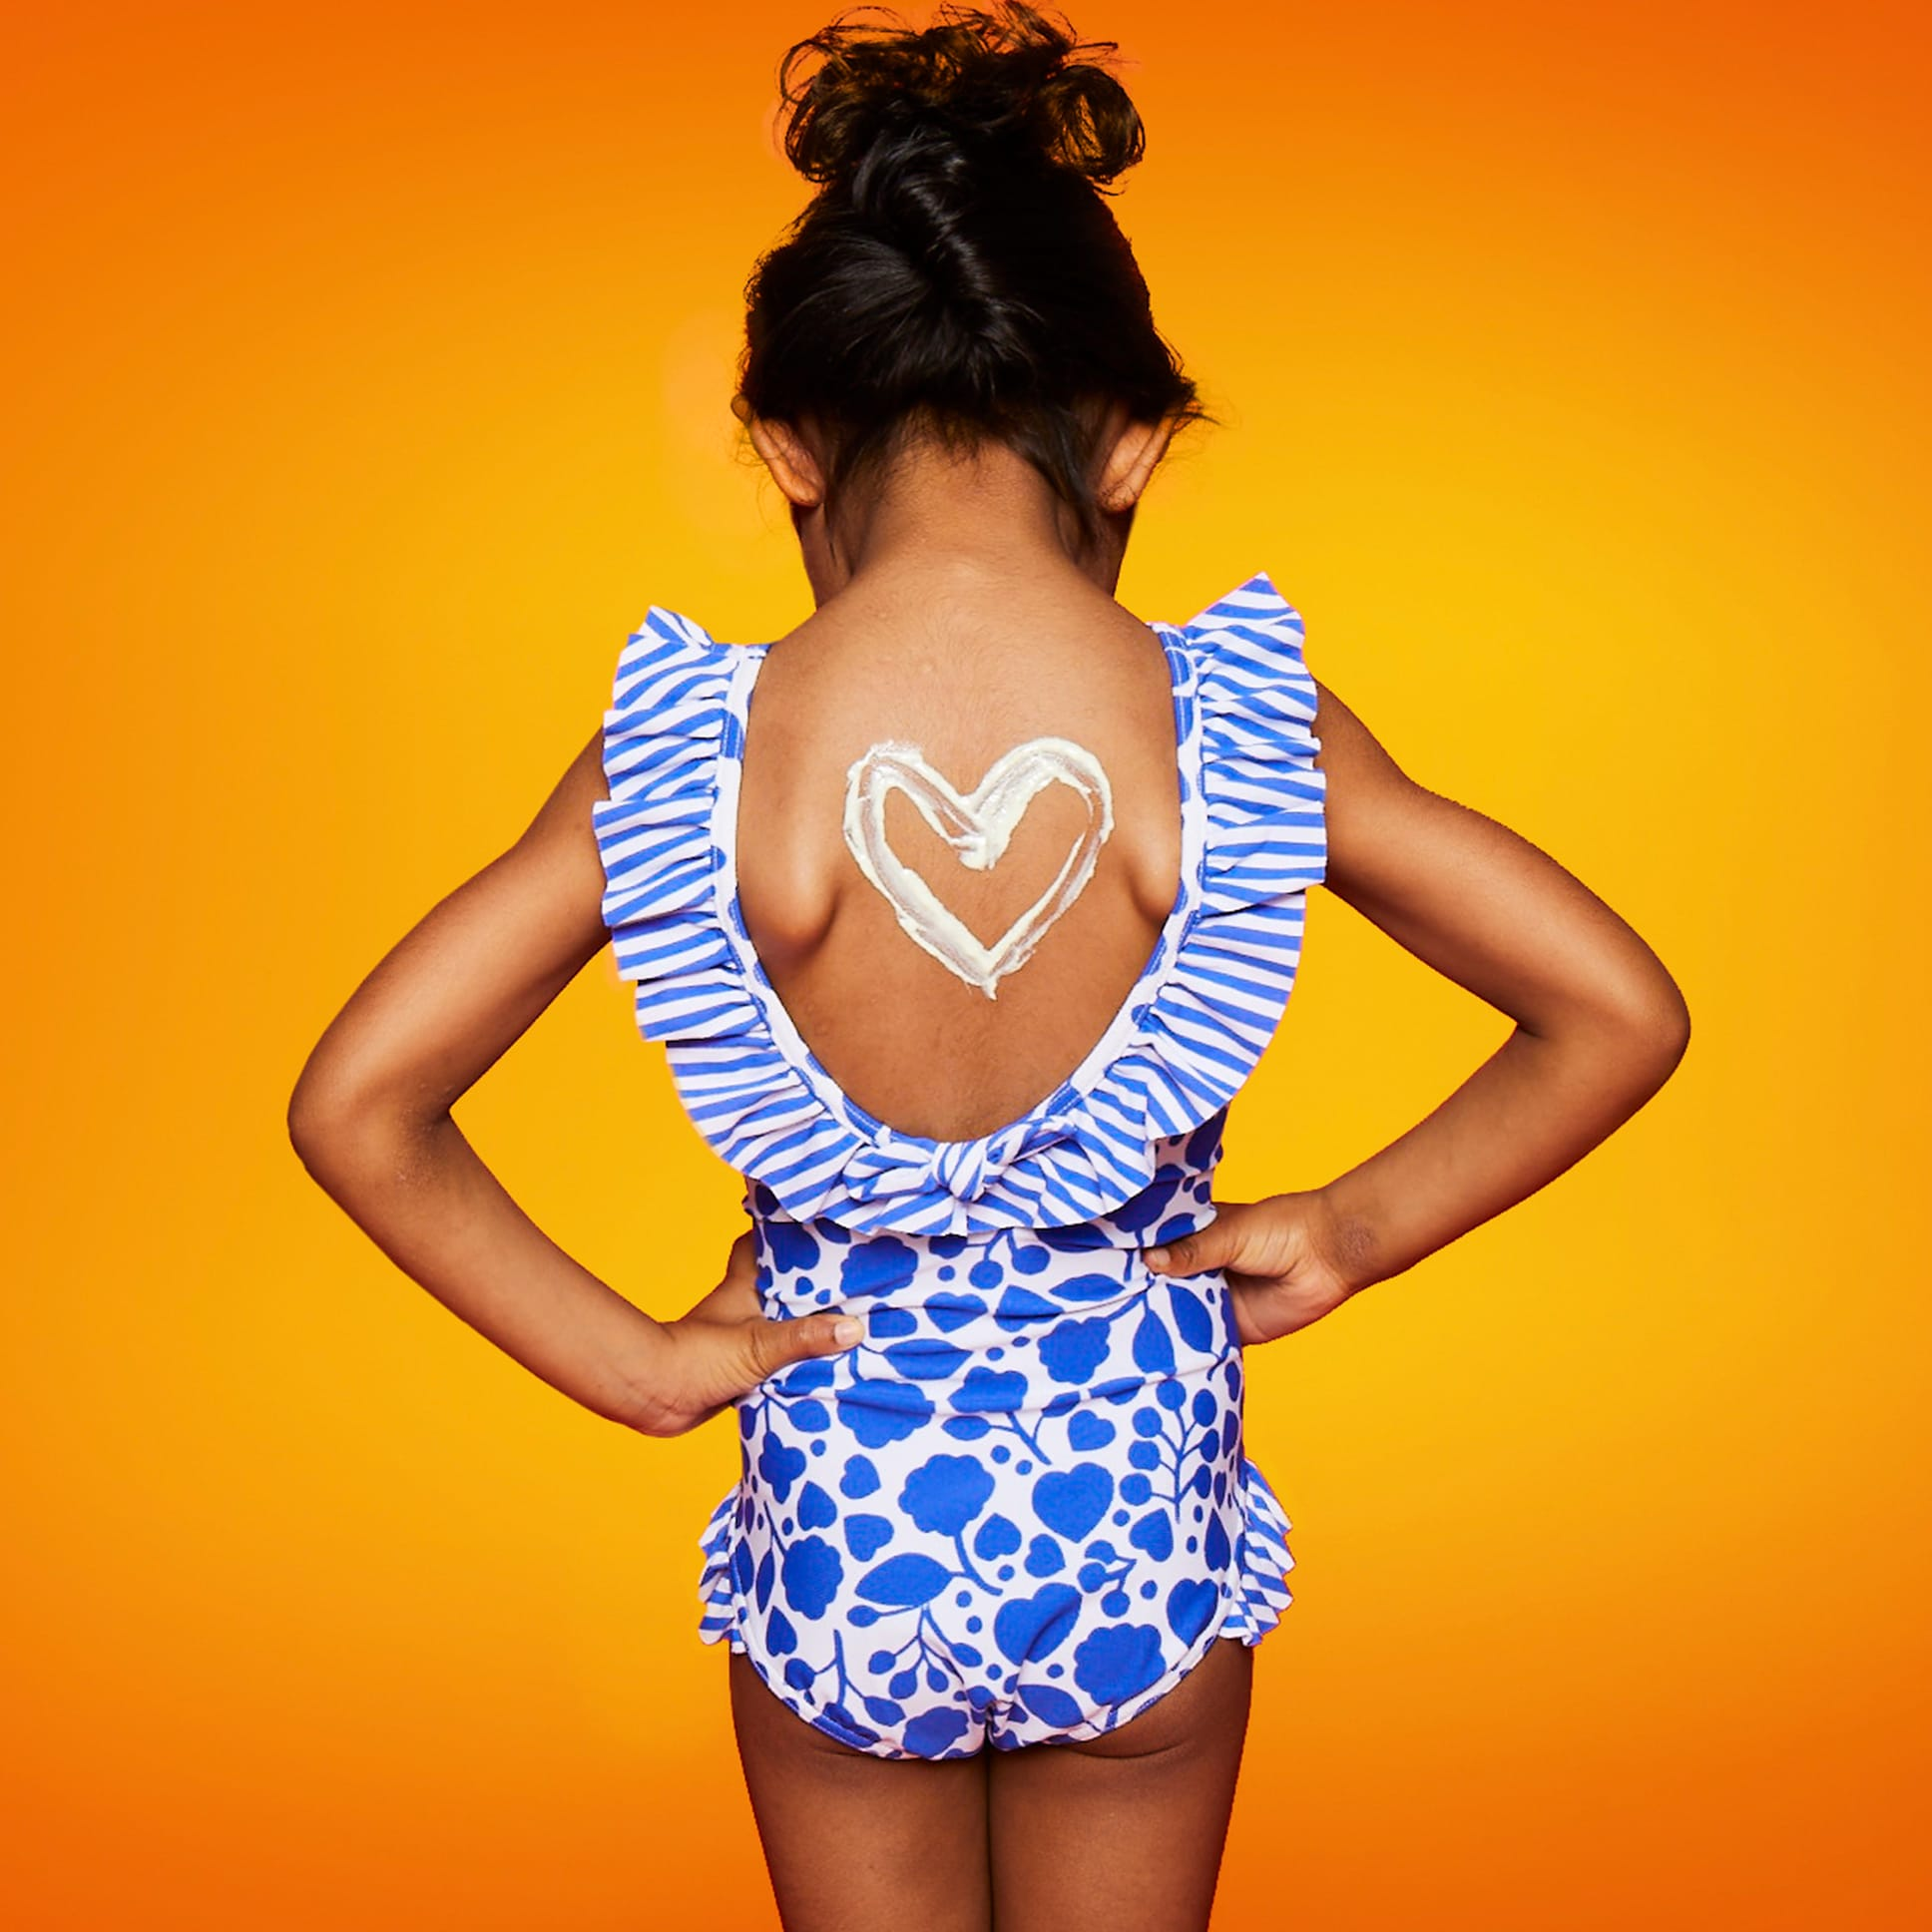 Black Girl, Sun Cream, Heart On Back Yellow background_Square